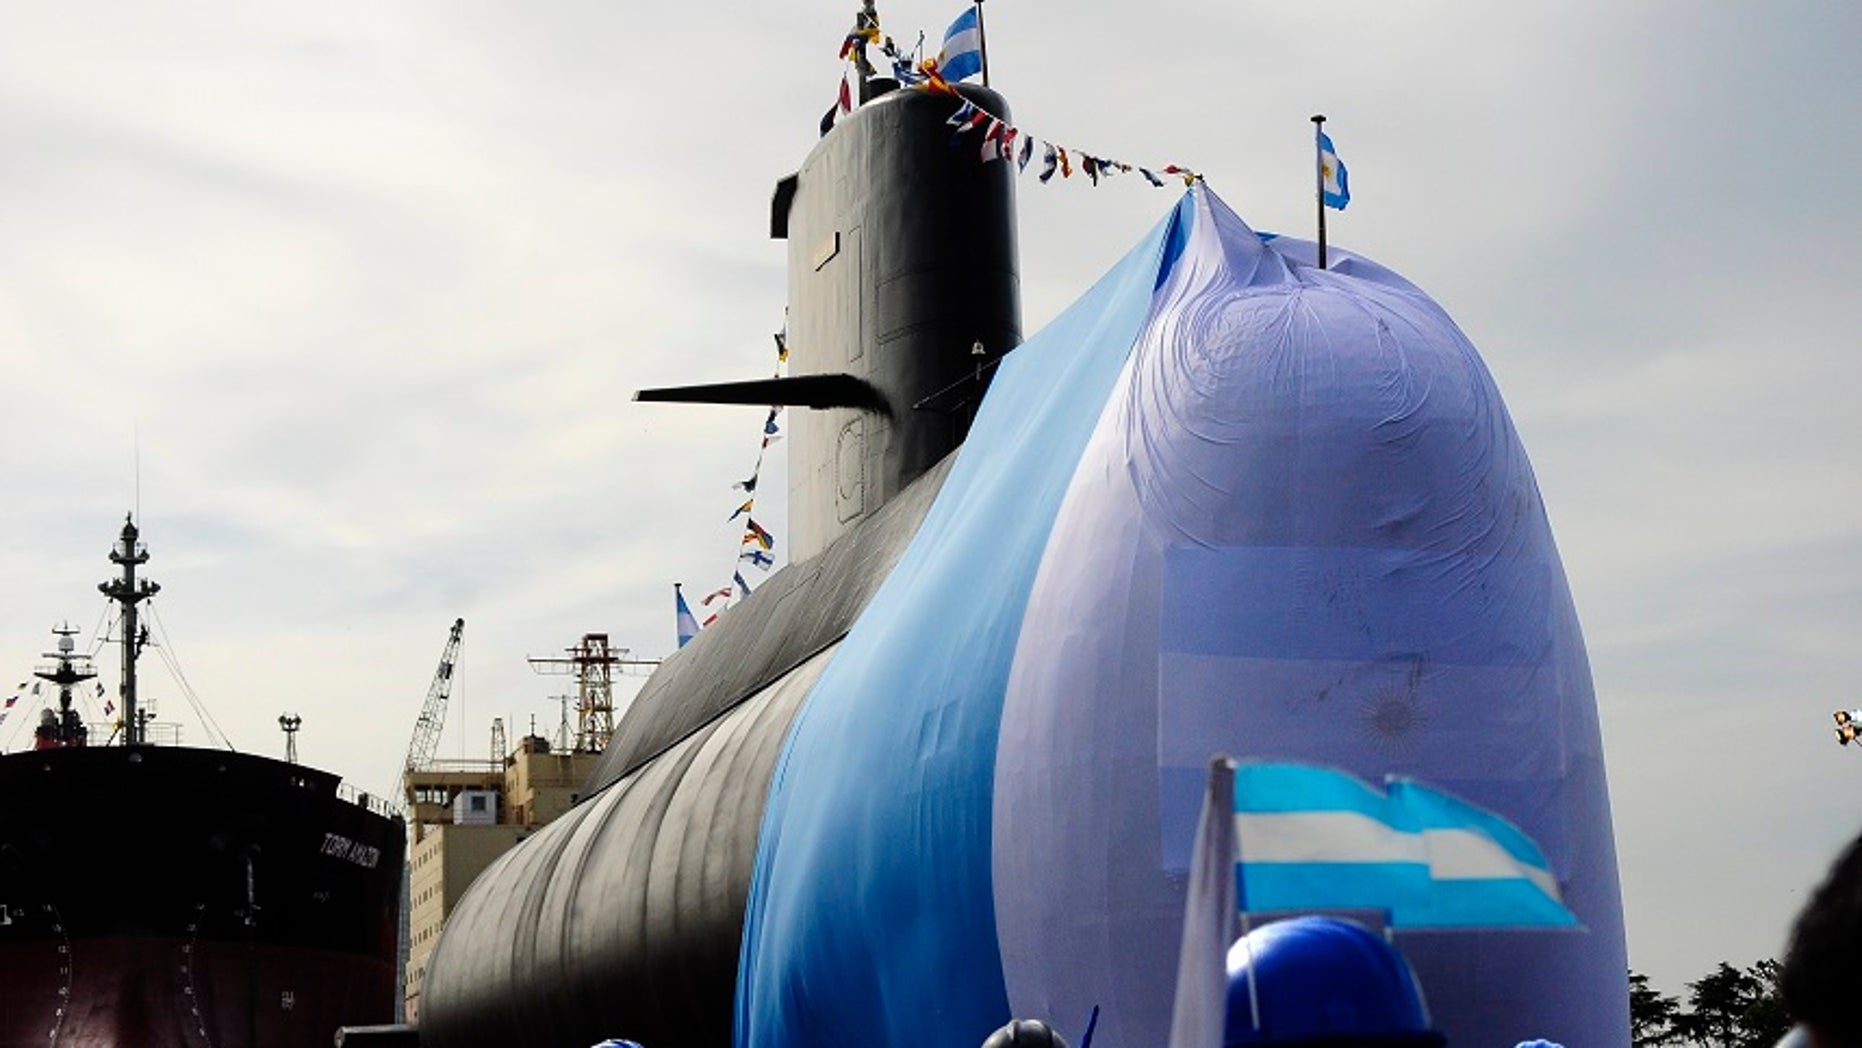 Argentina's navy insisted the ARA San Juan submarine was in good condition before it set off on its mission.